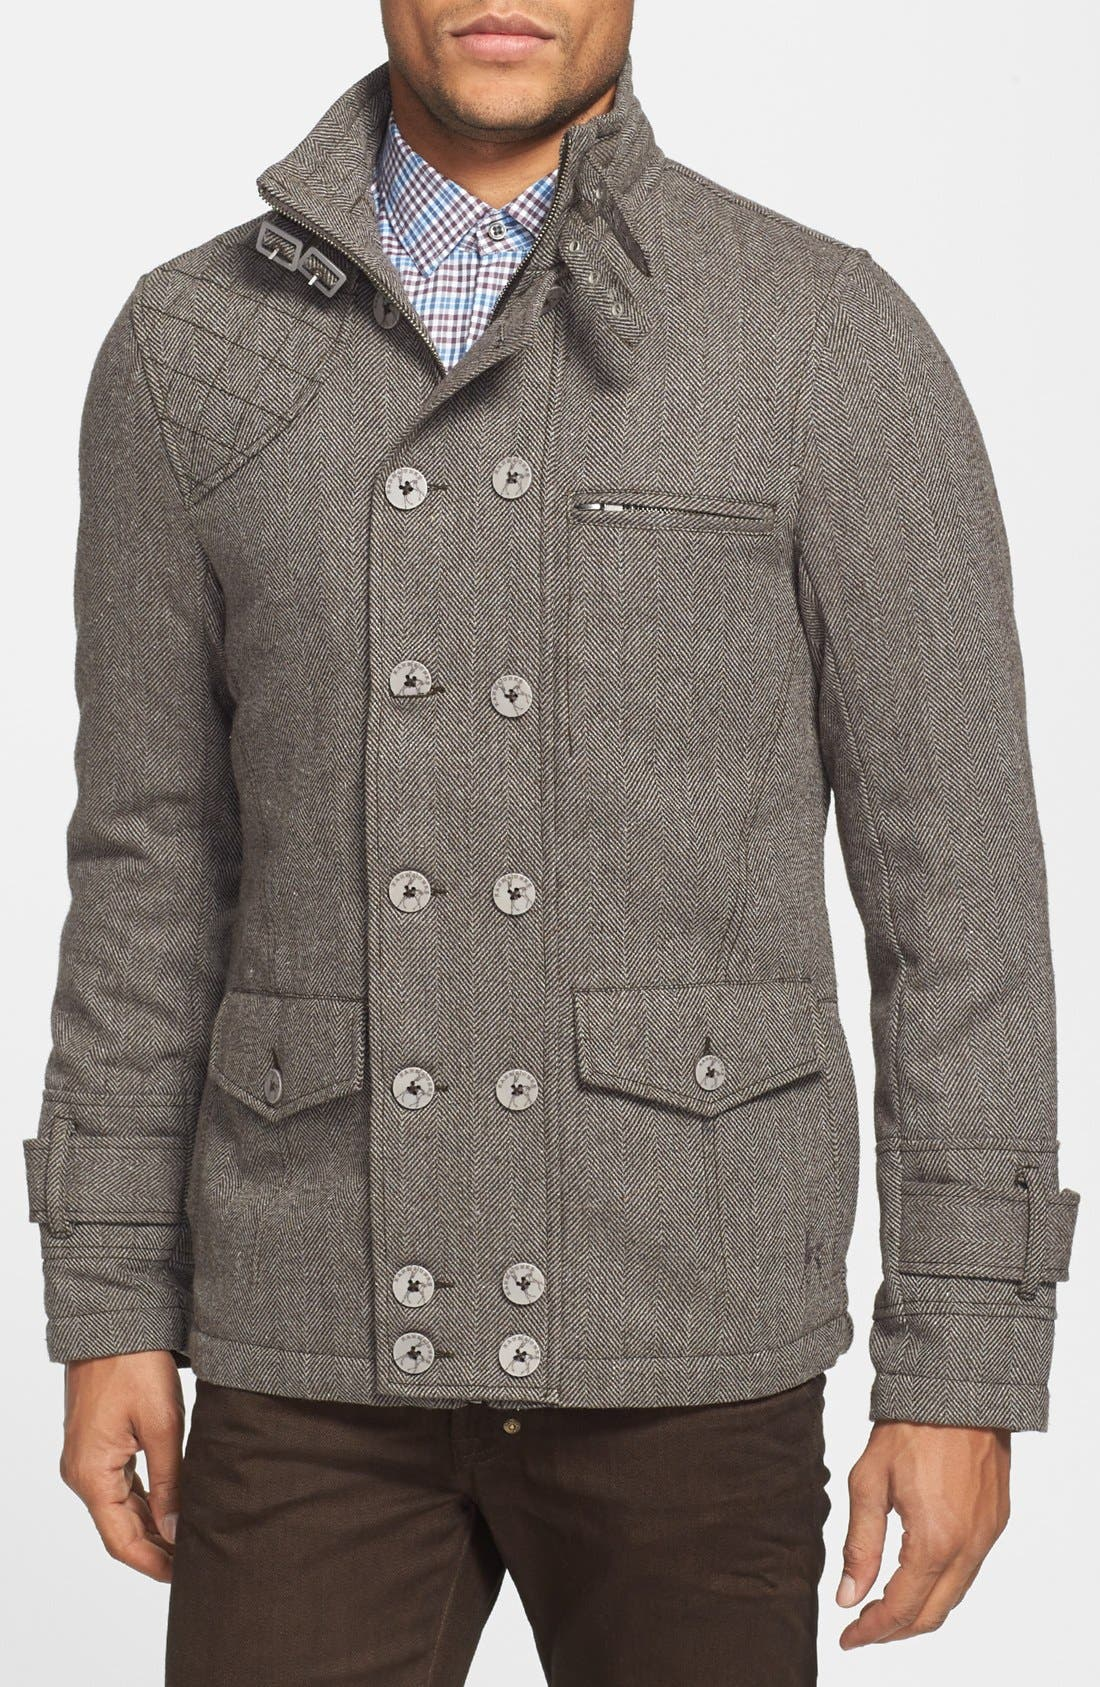 Alternate Image 1 Selected - Kane & Unke Herringbone Jacket